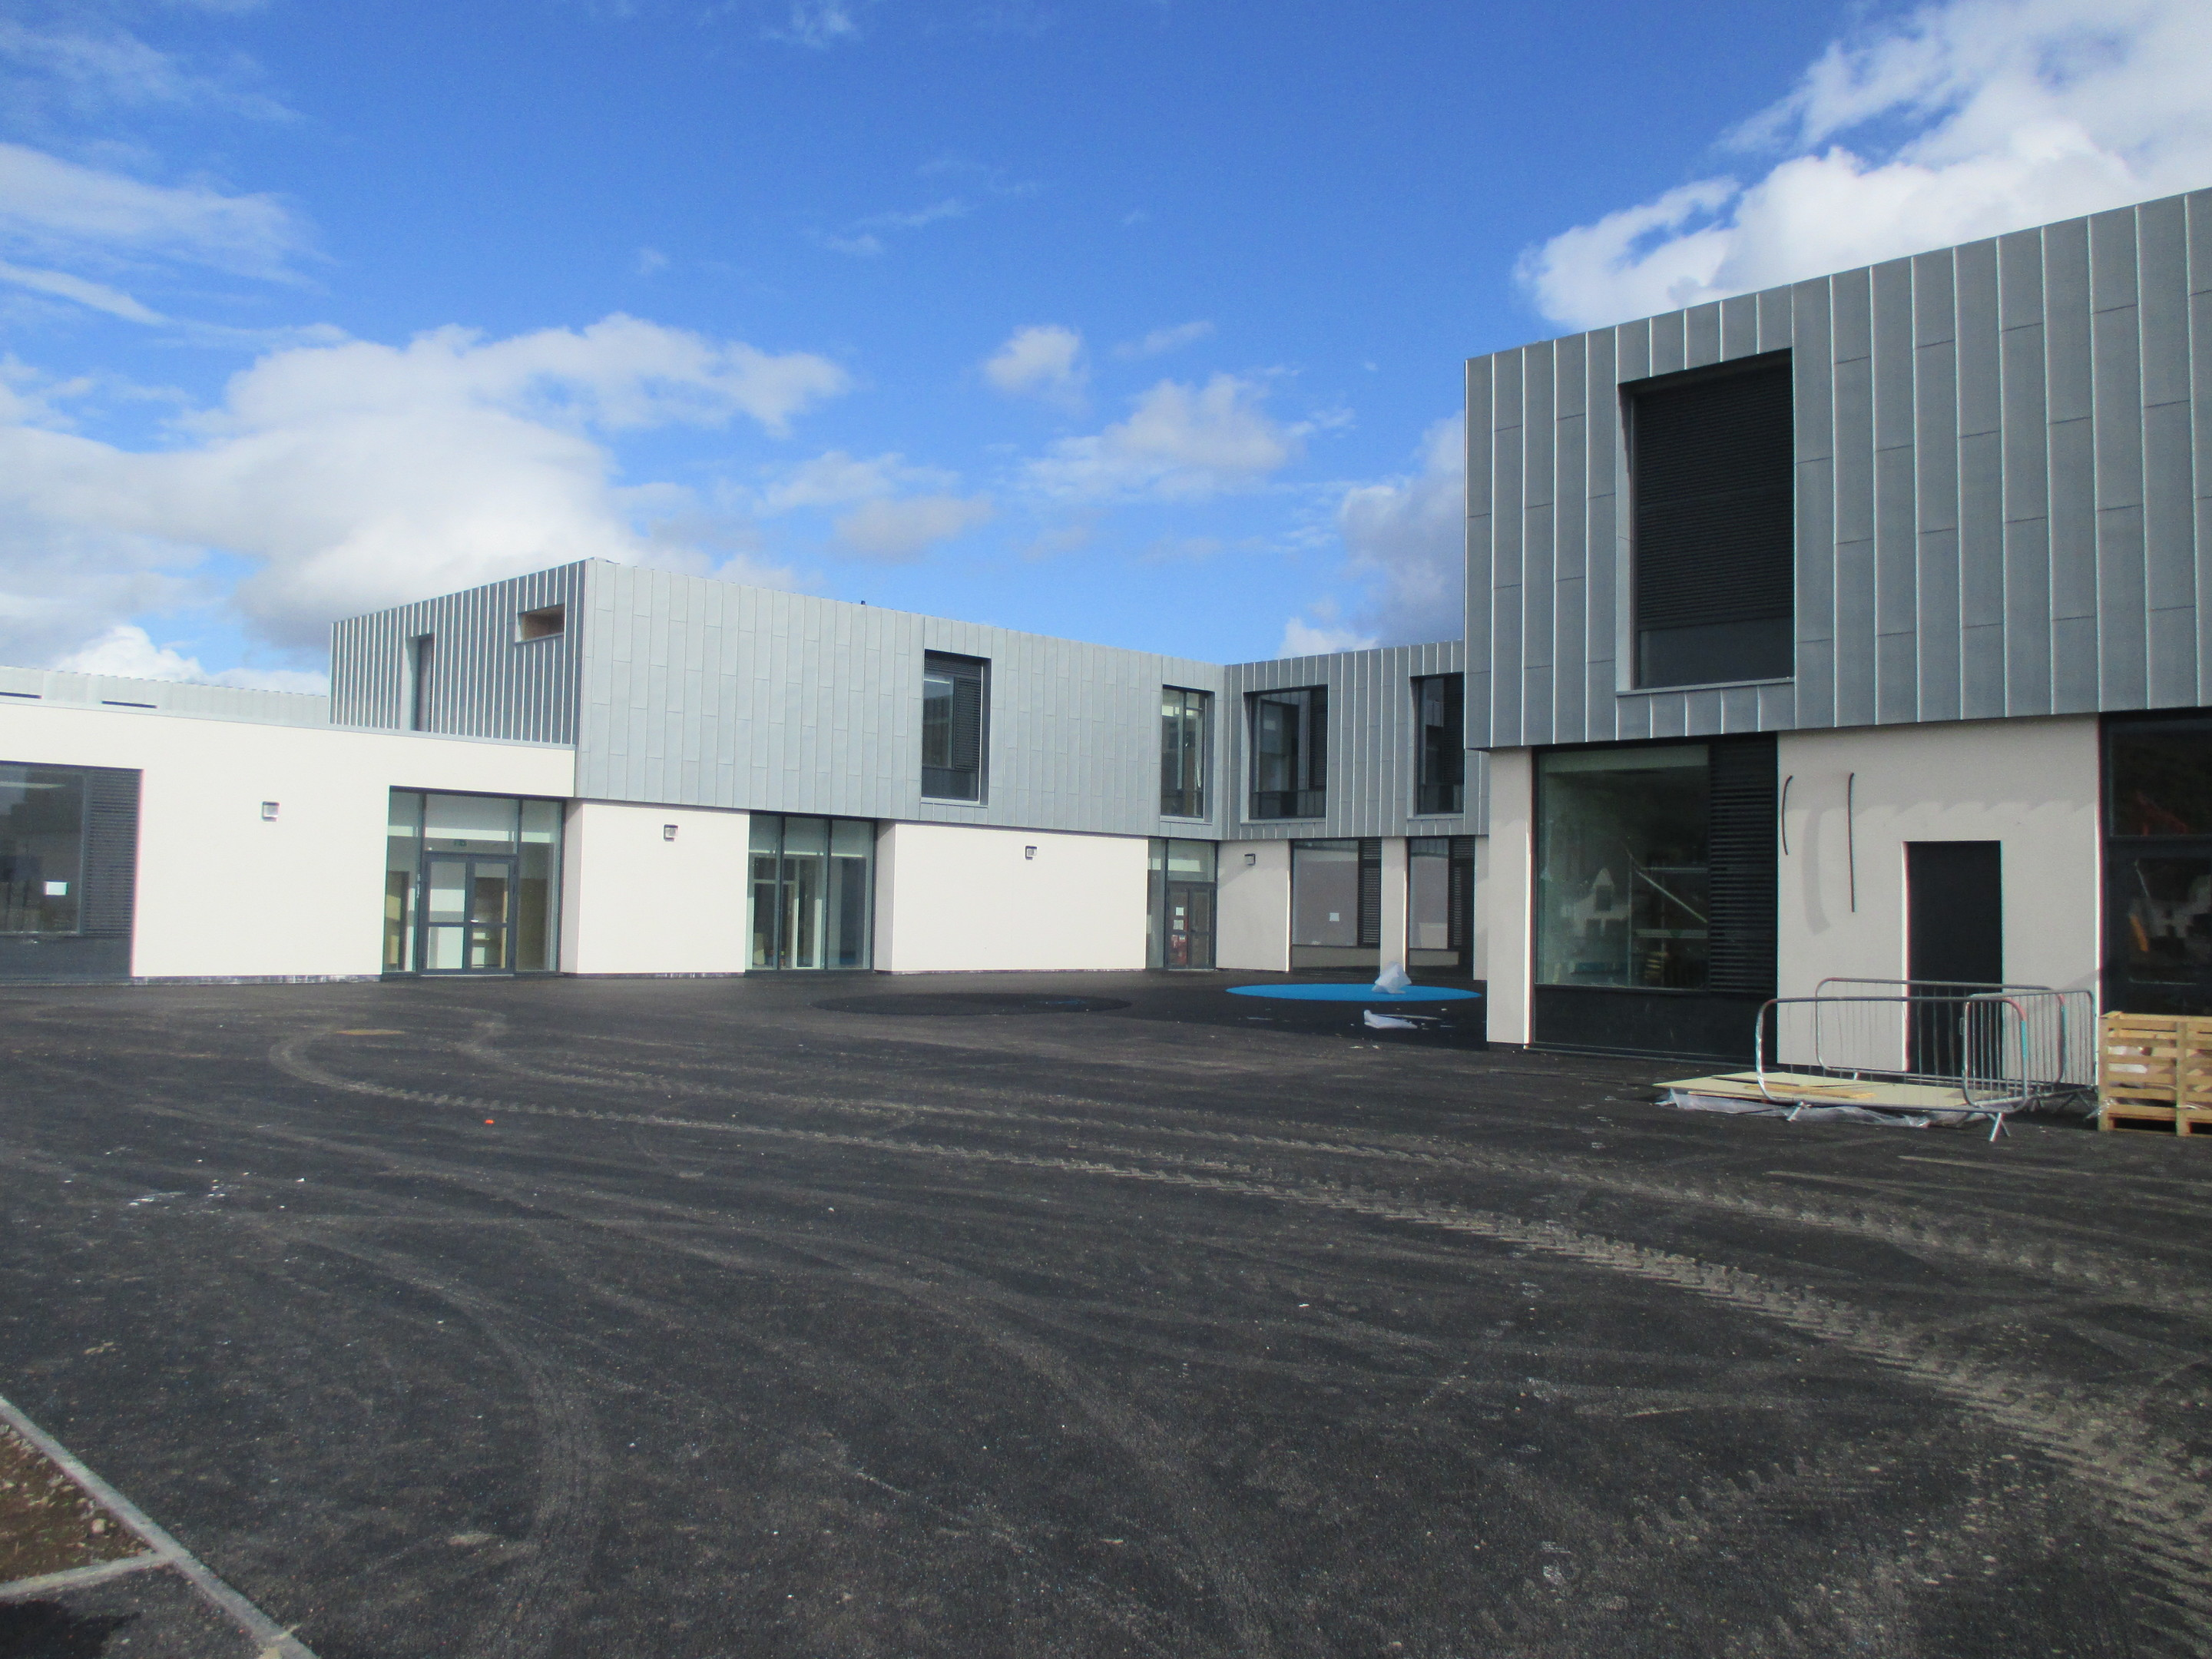 Pupils will move into Caol joint campus later this month.